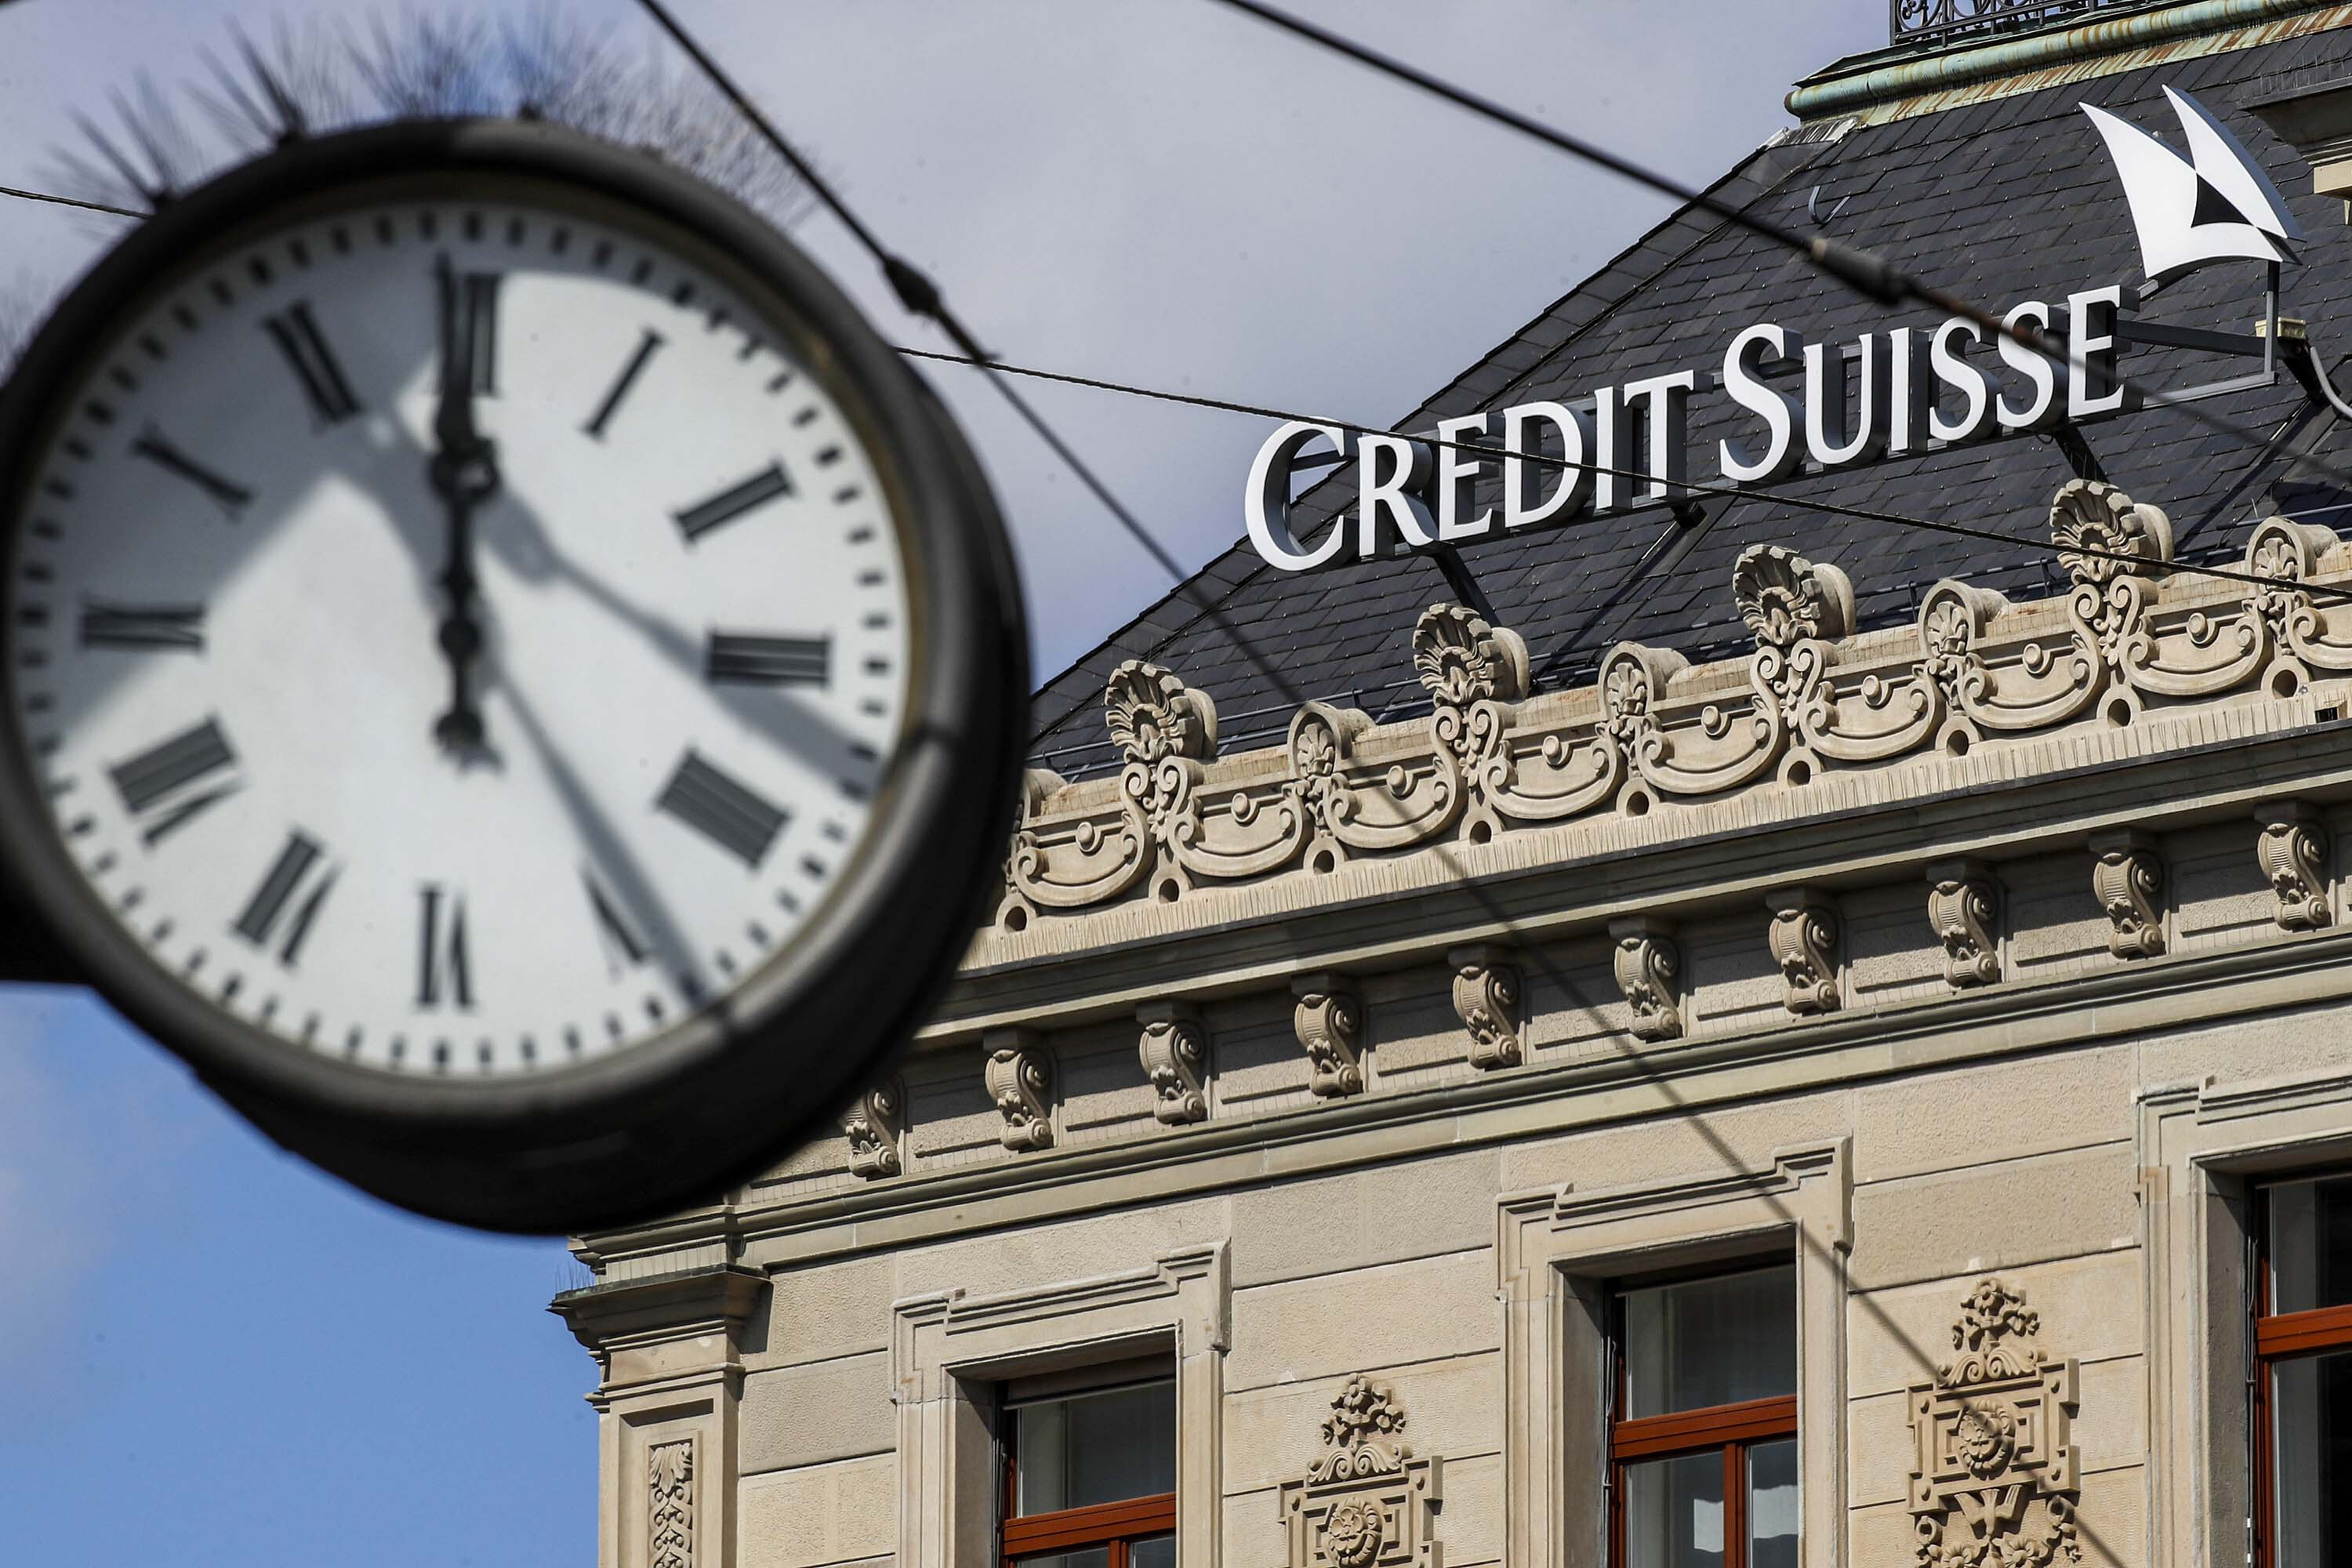 Credit Suisse helped Archegos take 'potentially catastrophic' risks before losing billions when it collapsed